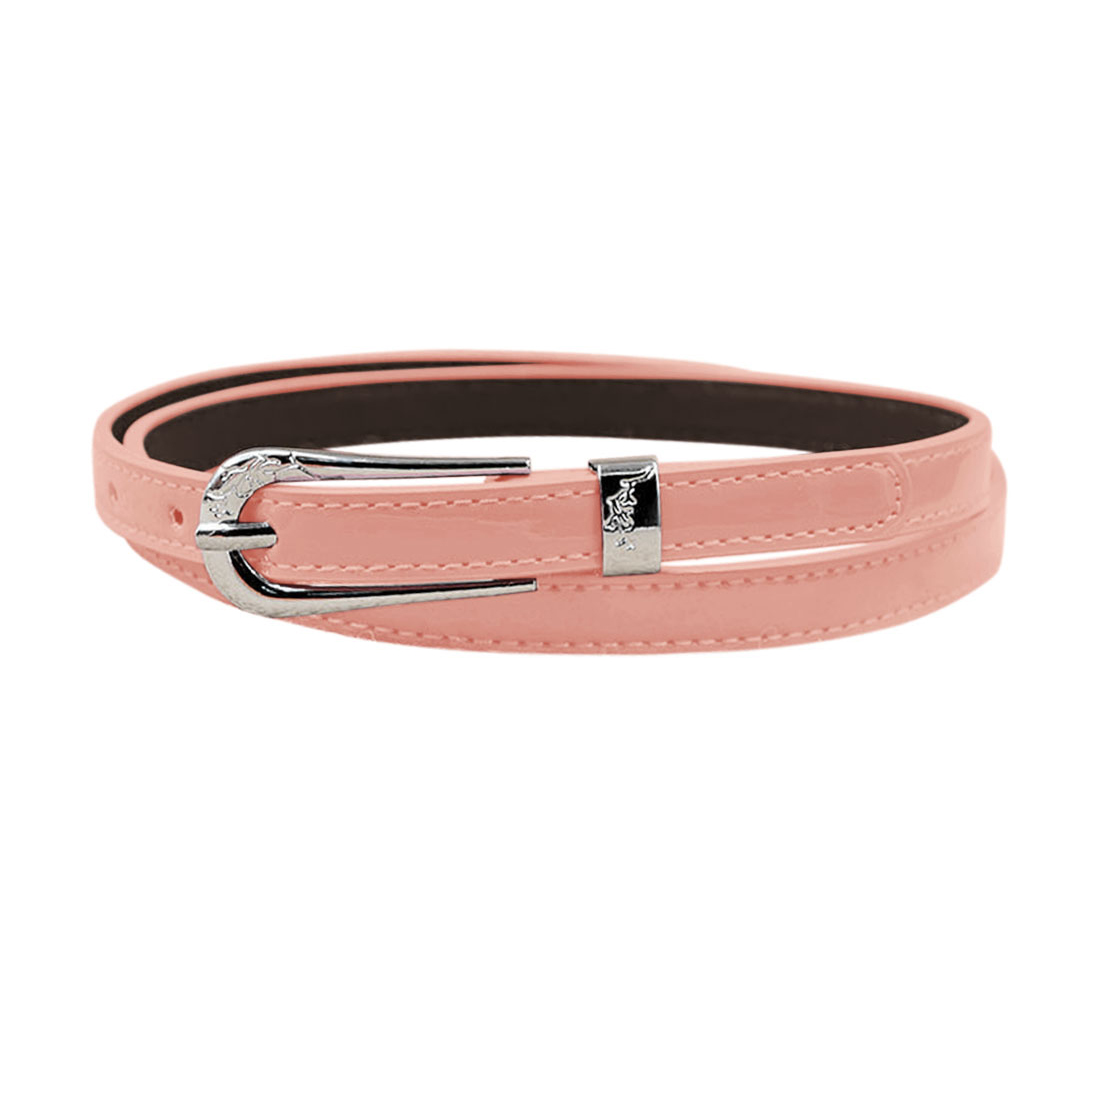 Women Single Pin Buckle Adjustable PU Waist Belt Pink